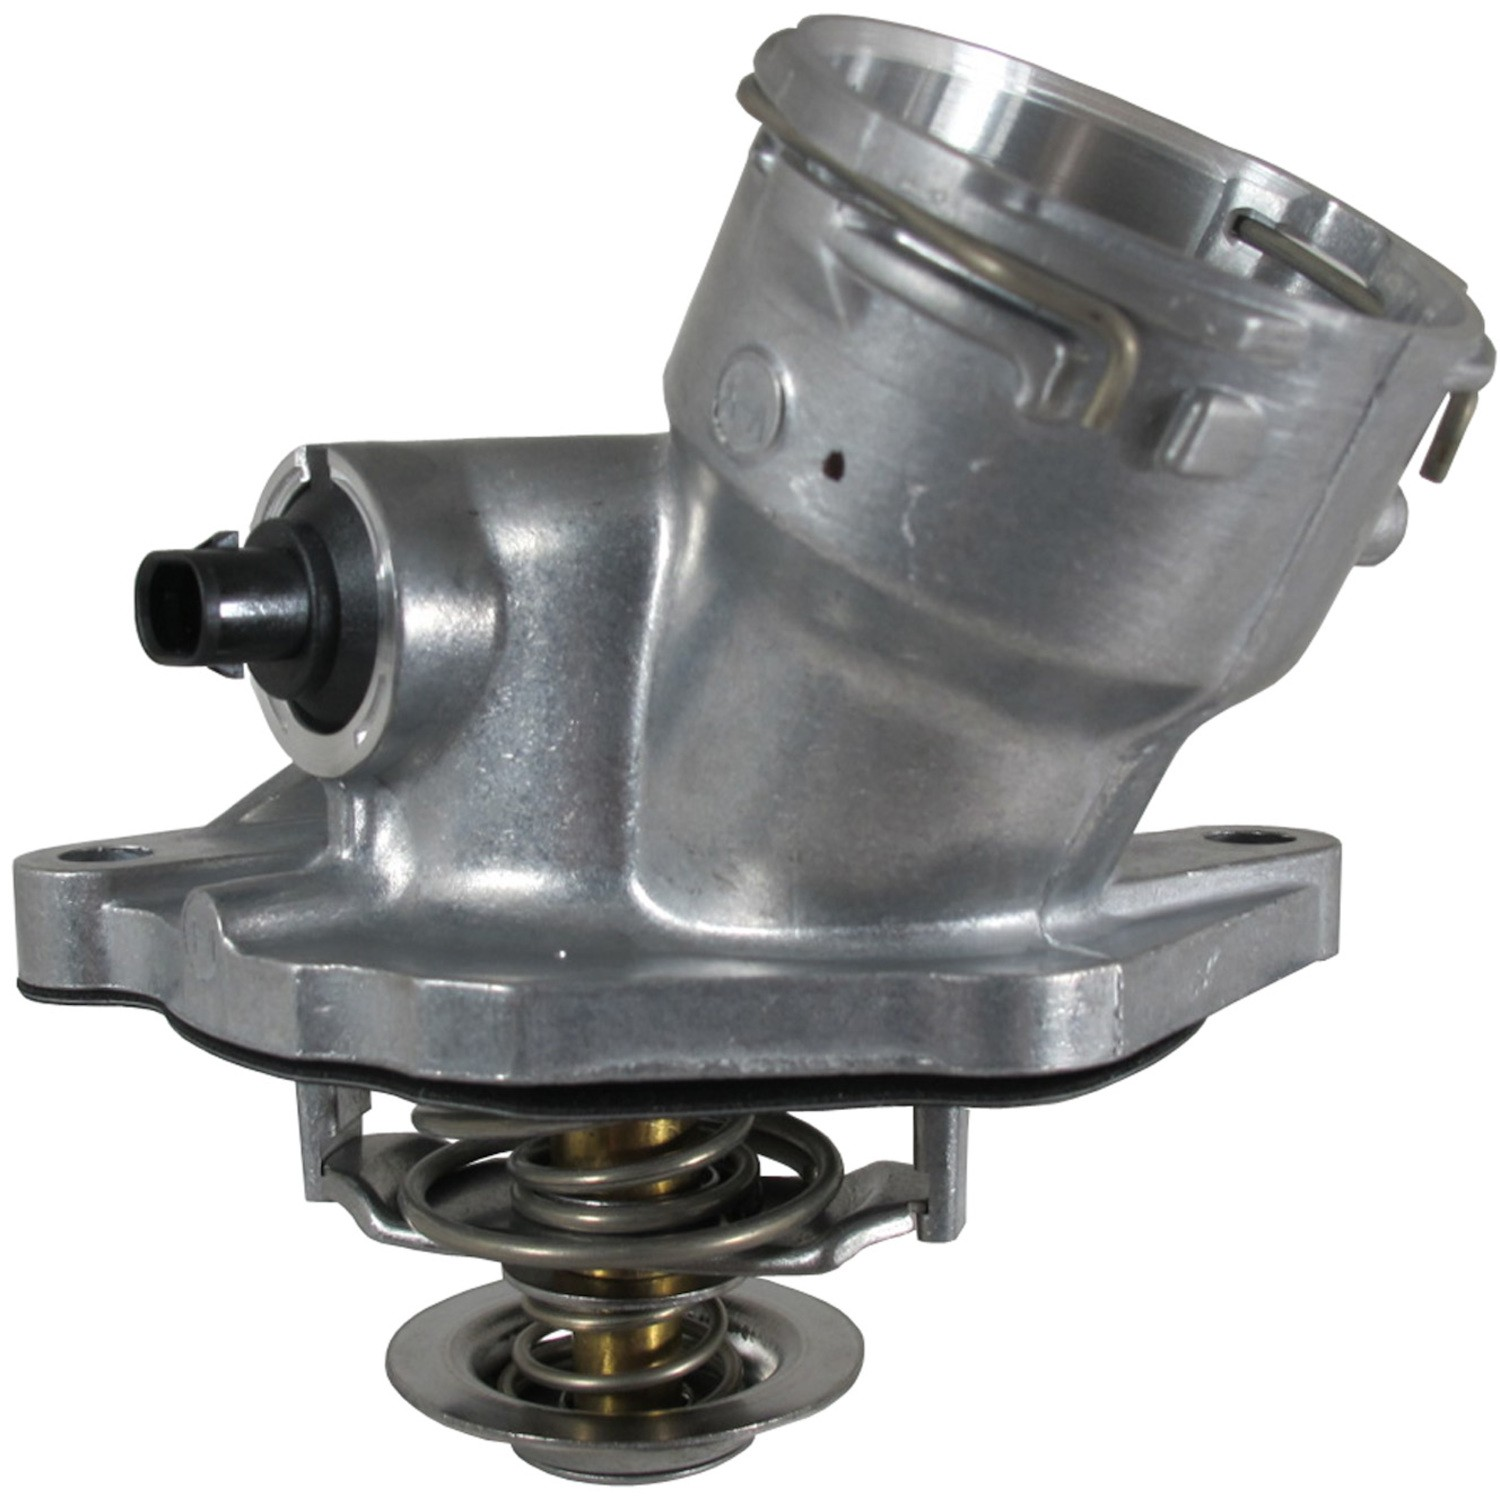 Engine Assembly Cooling oi Stant 15249 Coolant Thermostat Water Outlet